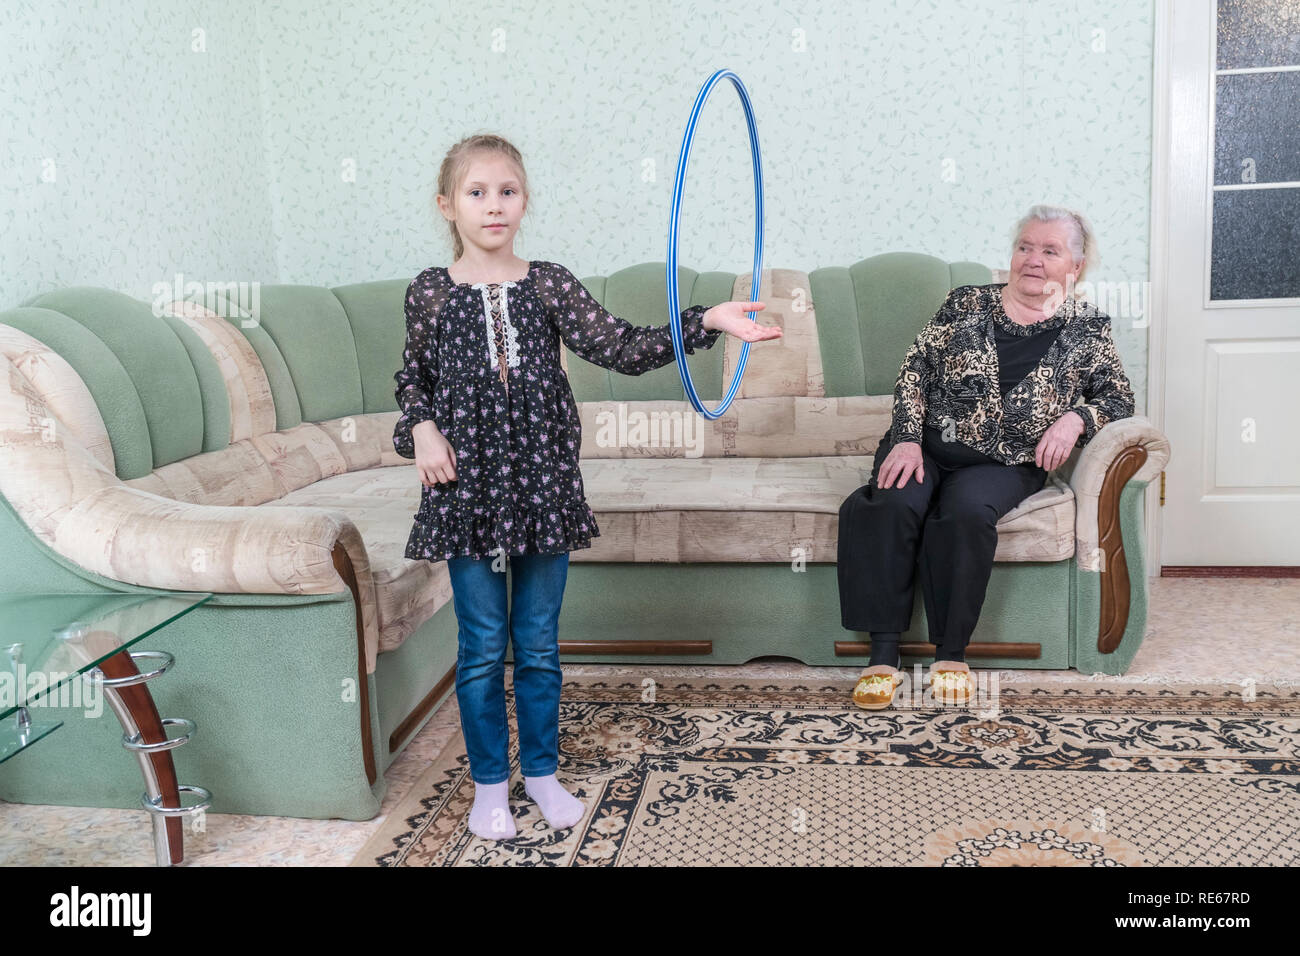 Granddaughter rotates the hoop on the arm, in front of her great-grandmother, sitting on the couch - Stock Image